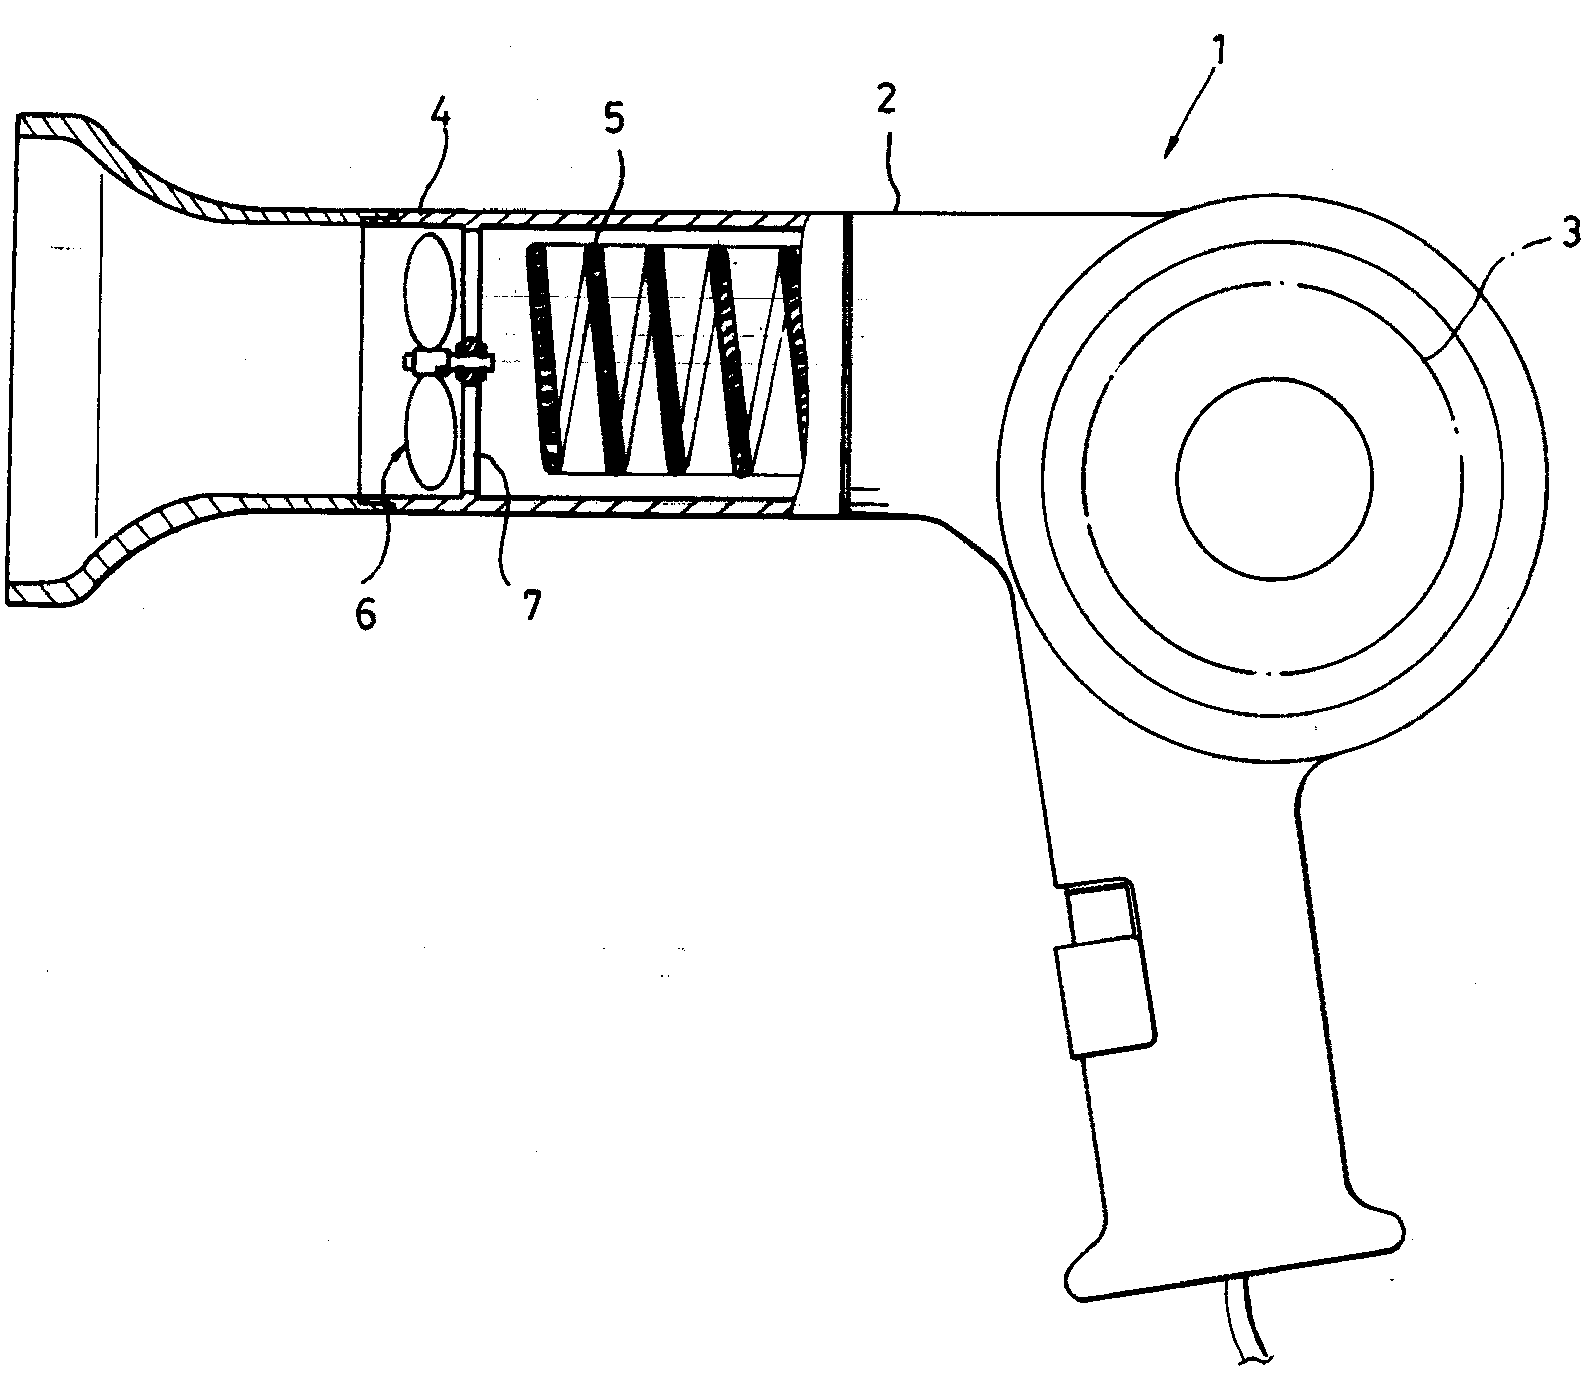 Hair dryer dyson patent